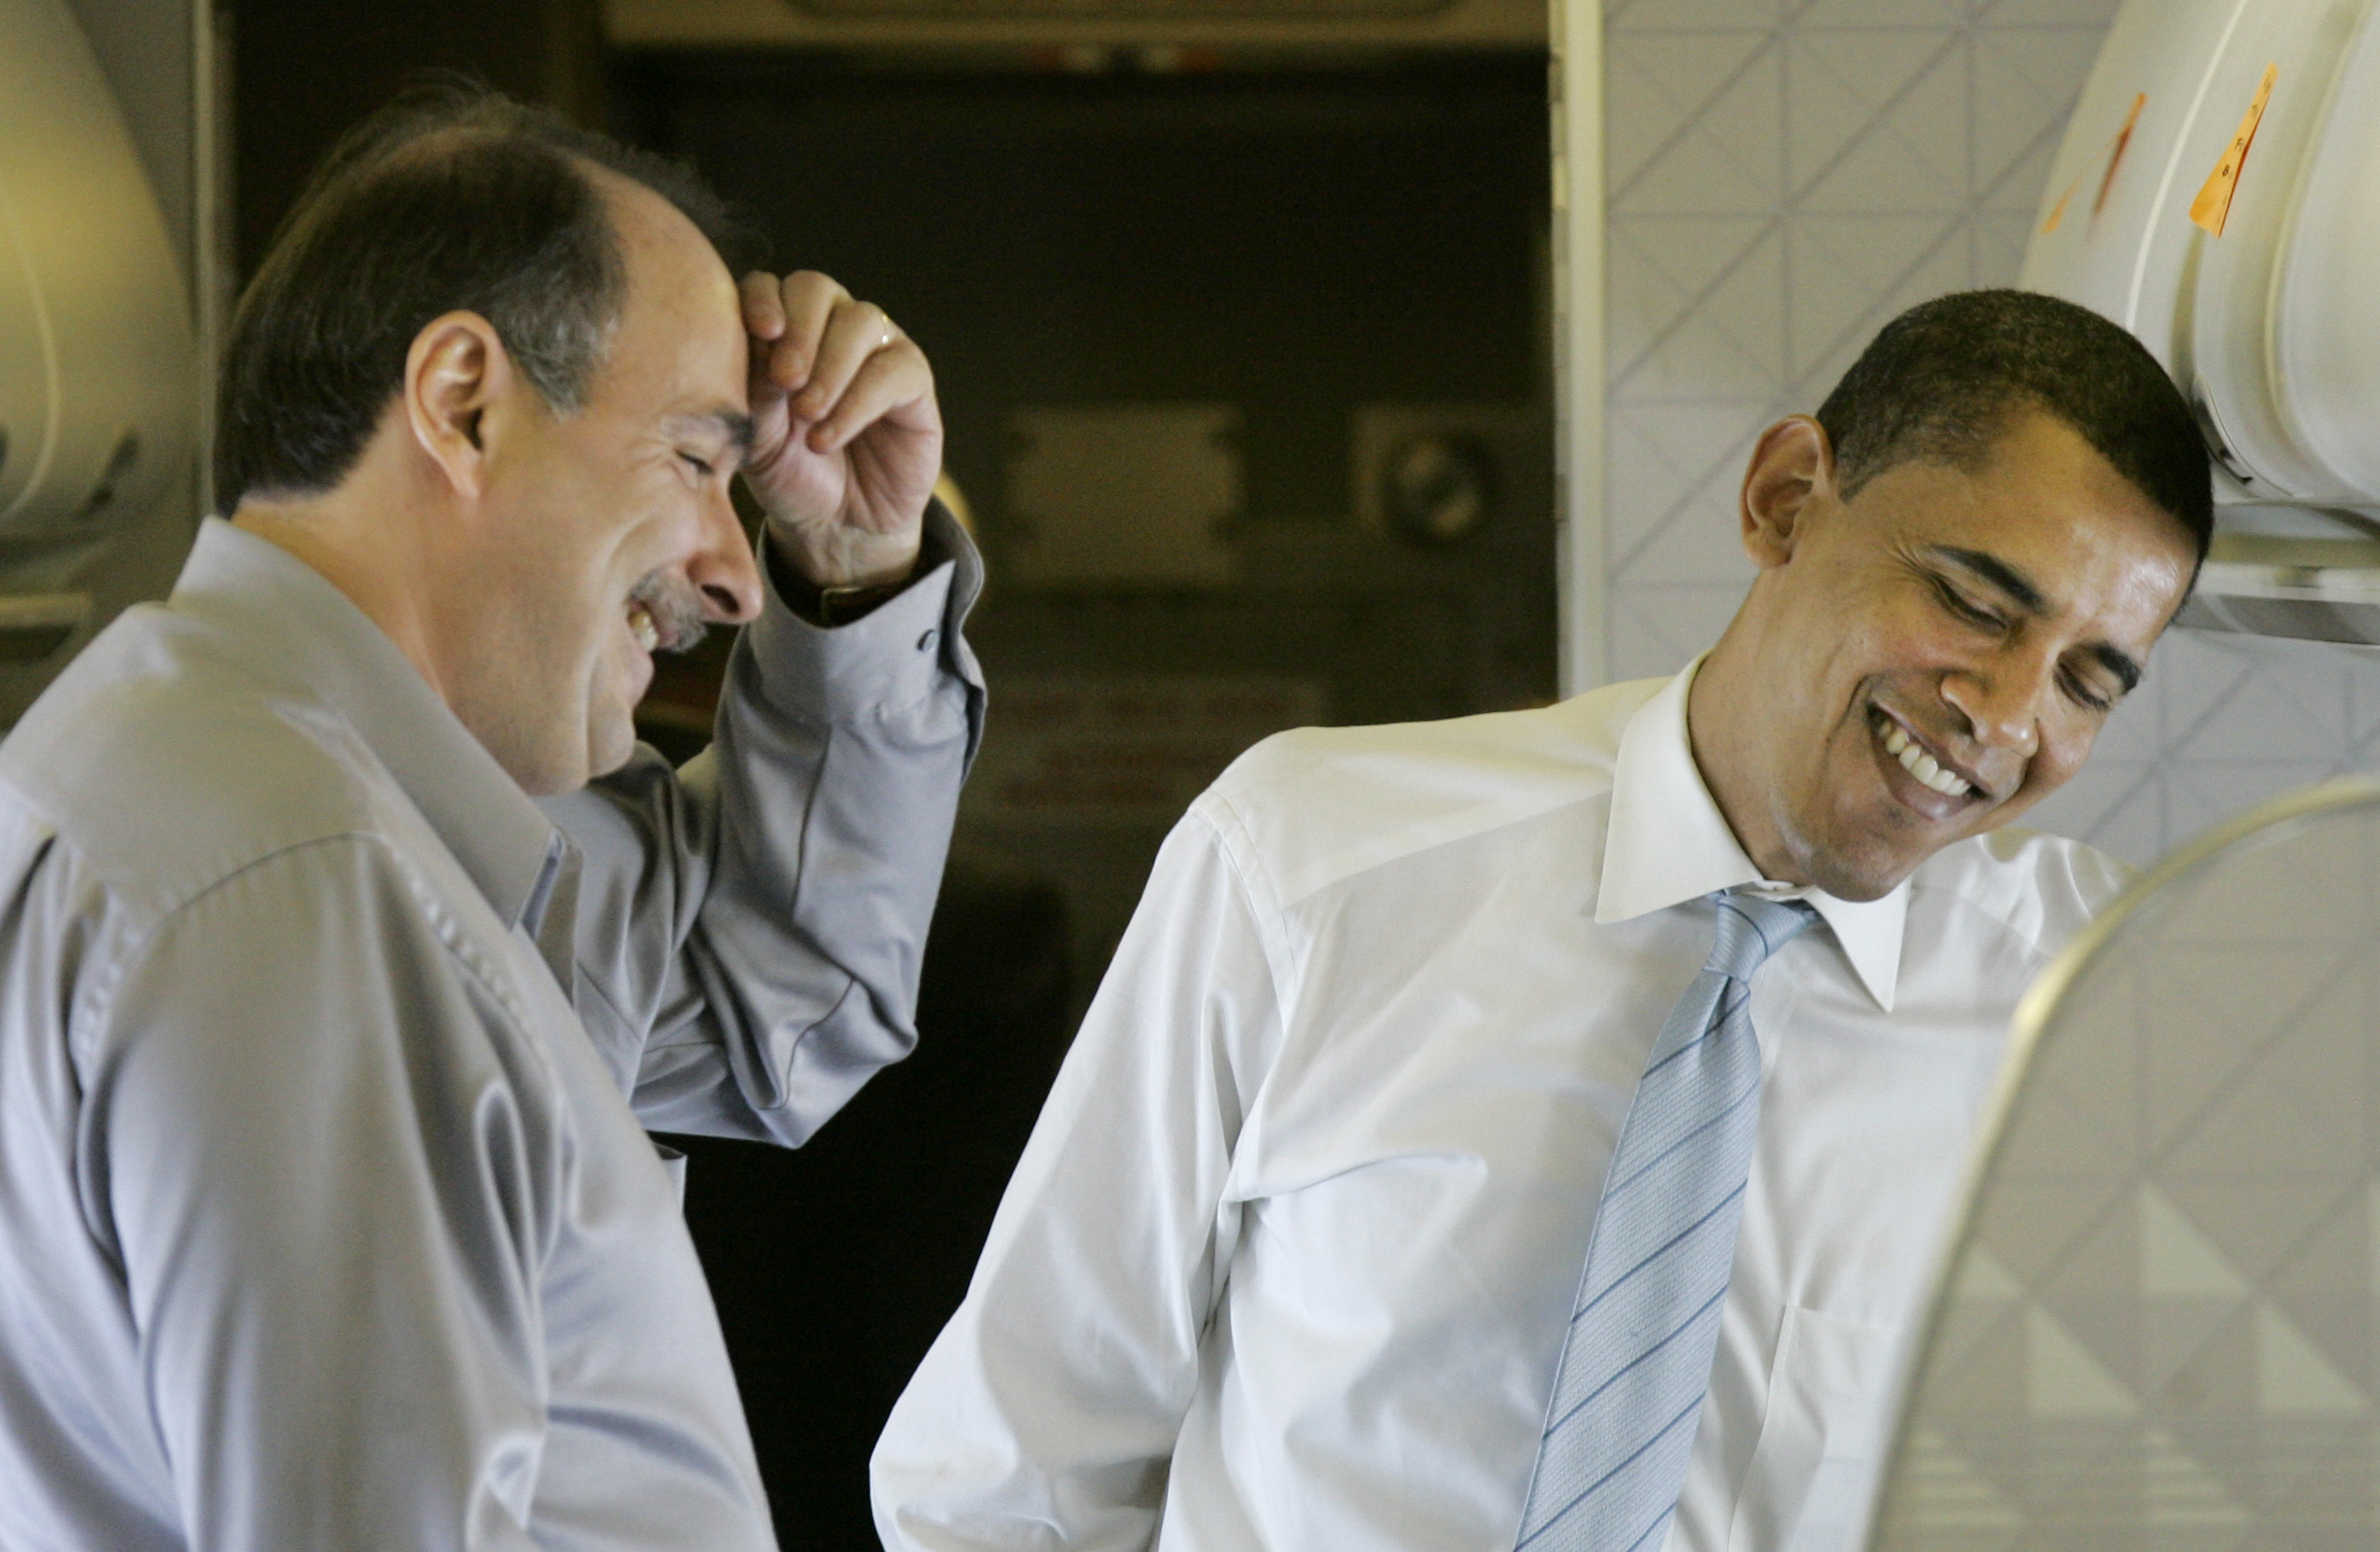 Democratic presidential hopeful Sen. Barack Obama, D-Ill., shares a laugh with his staff and Senior Campaign Advisor David Axelrod, left, during a flight between Chicago and East Rutherford, N.J., Monday, Feb. 4, 2008.(AP Photo/Charles Rex Arbogast)